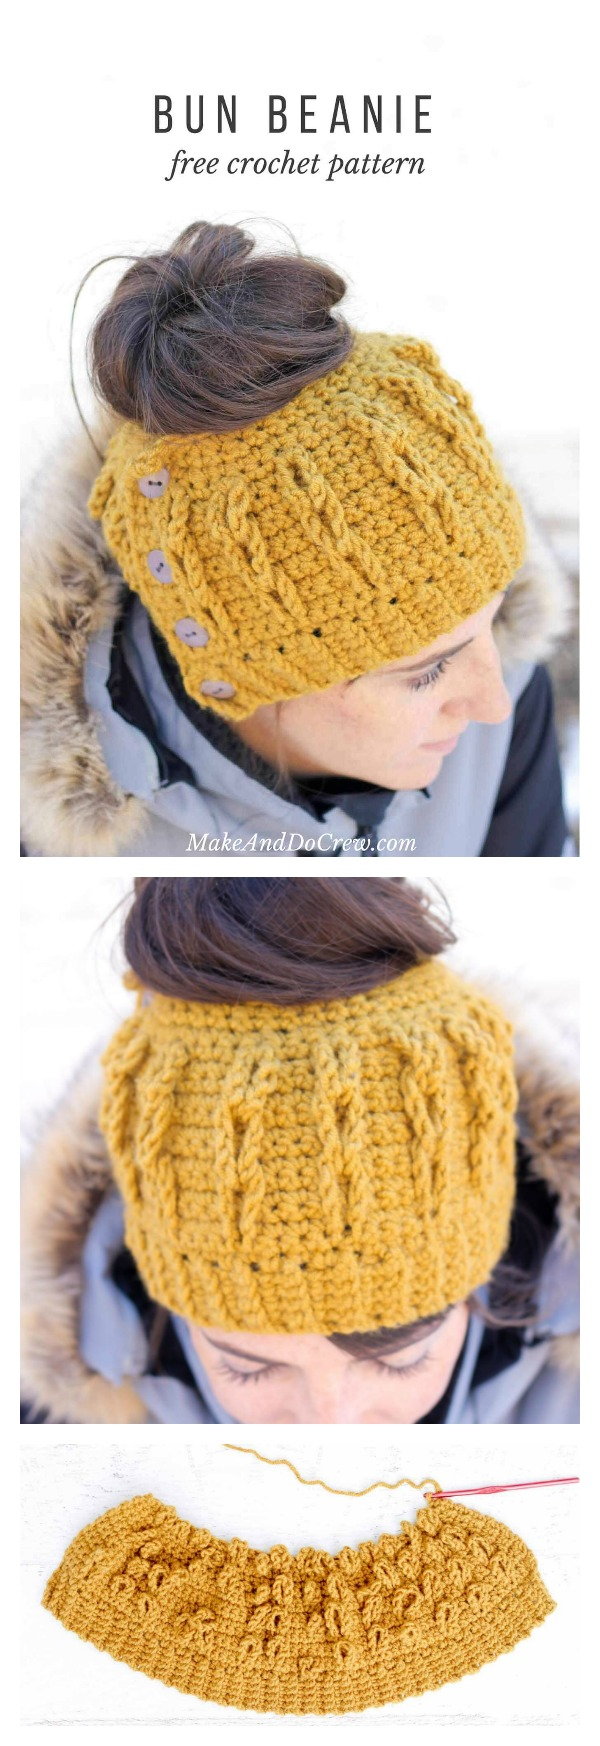 Faux Cabled Crochet Bun Beanie Free Pattern and Video Tutorial